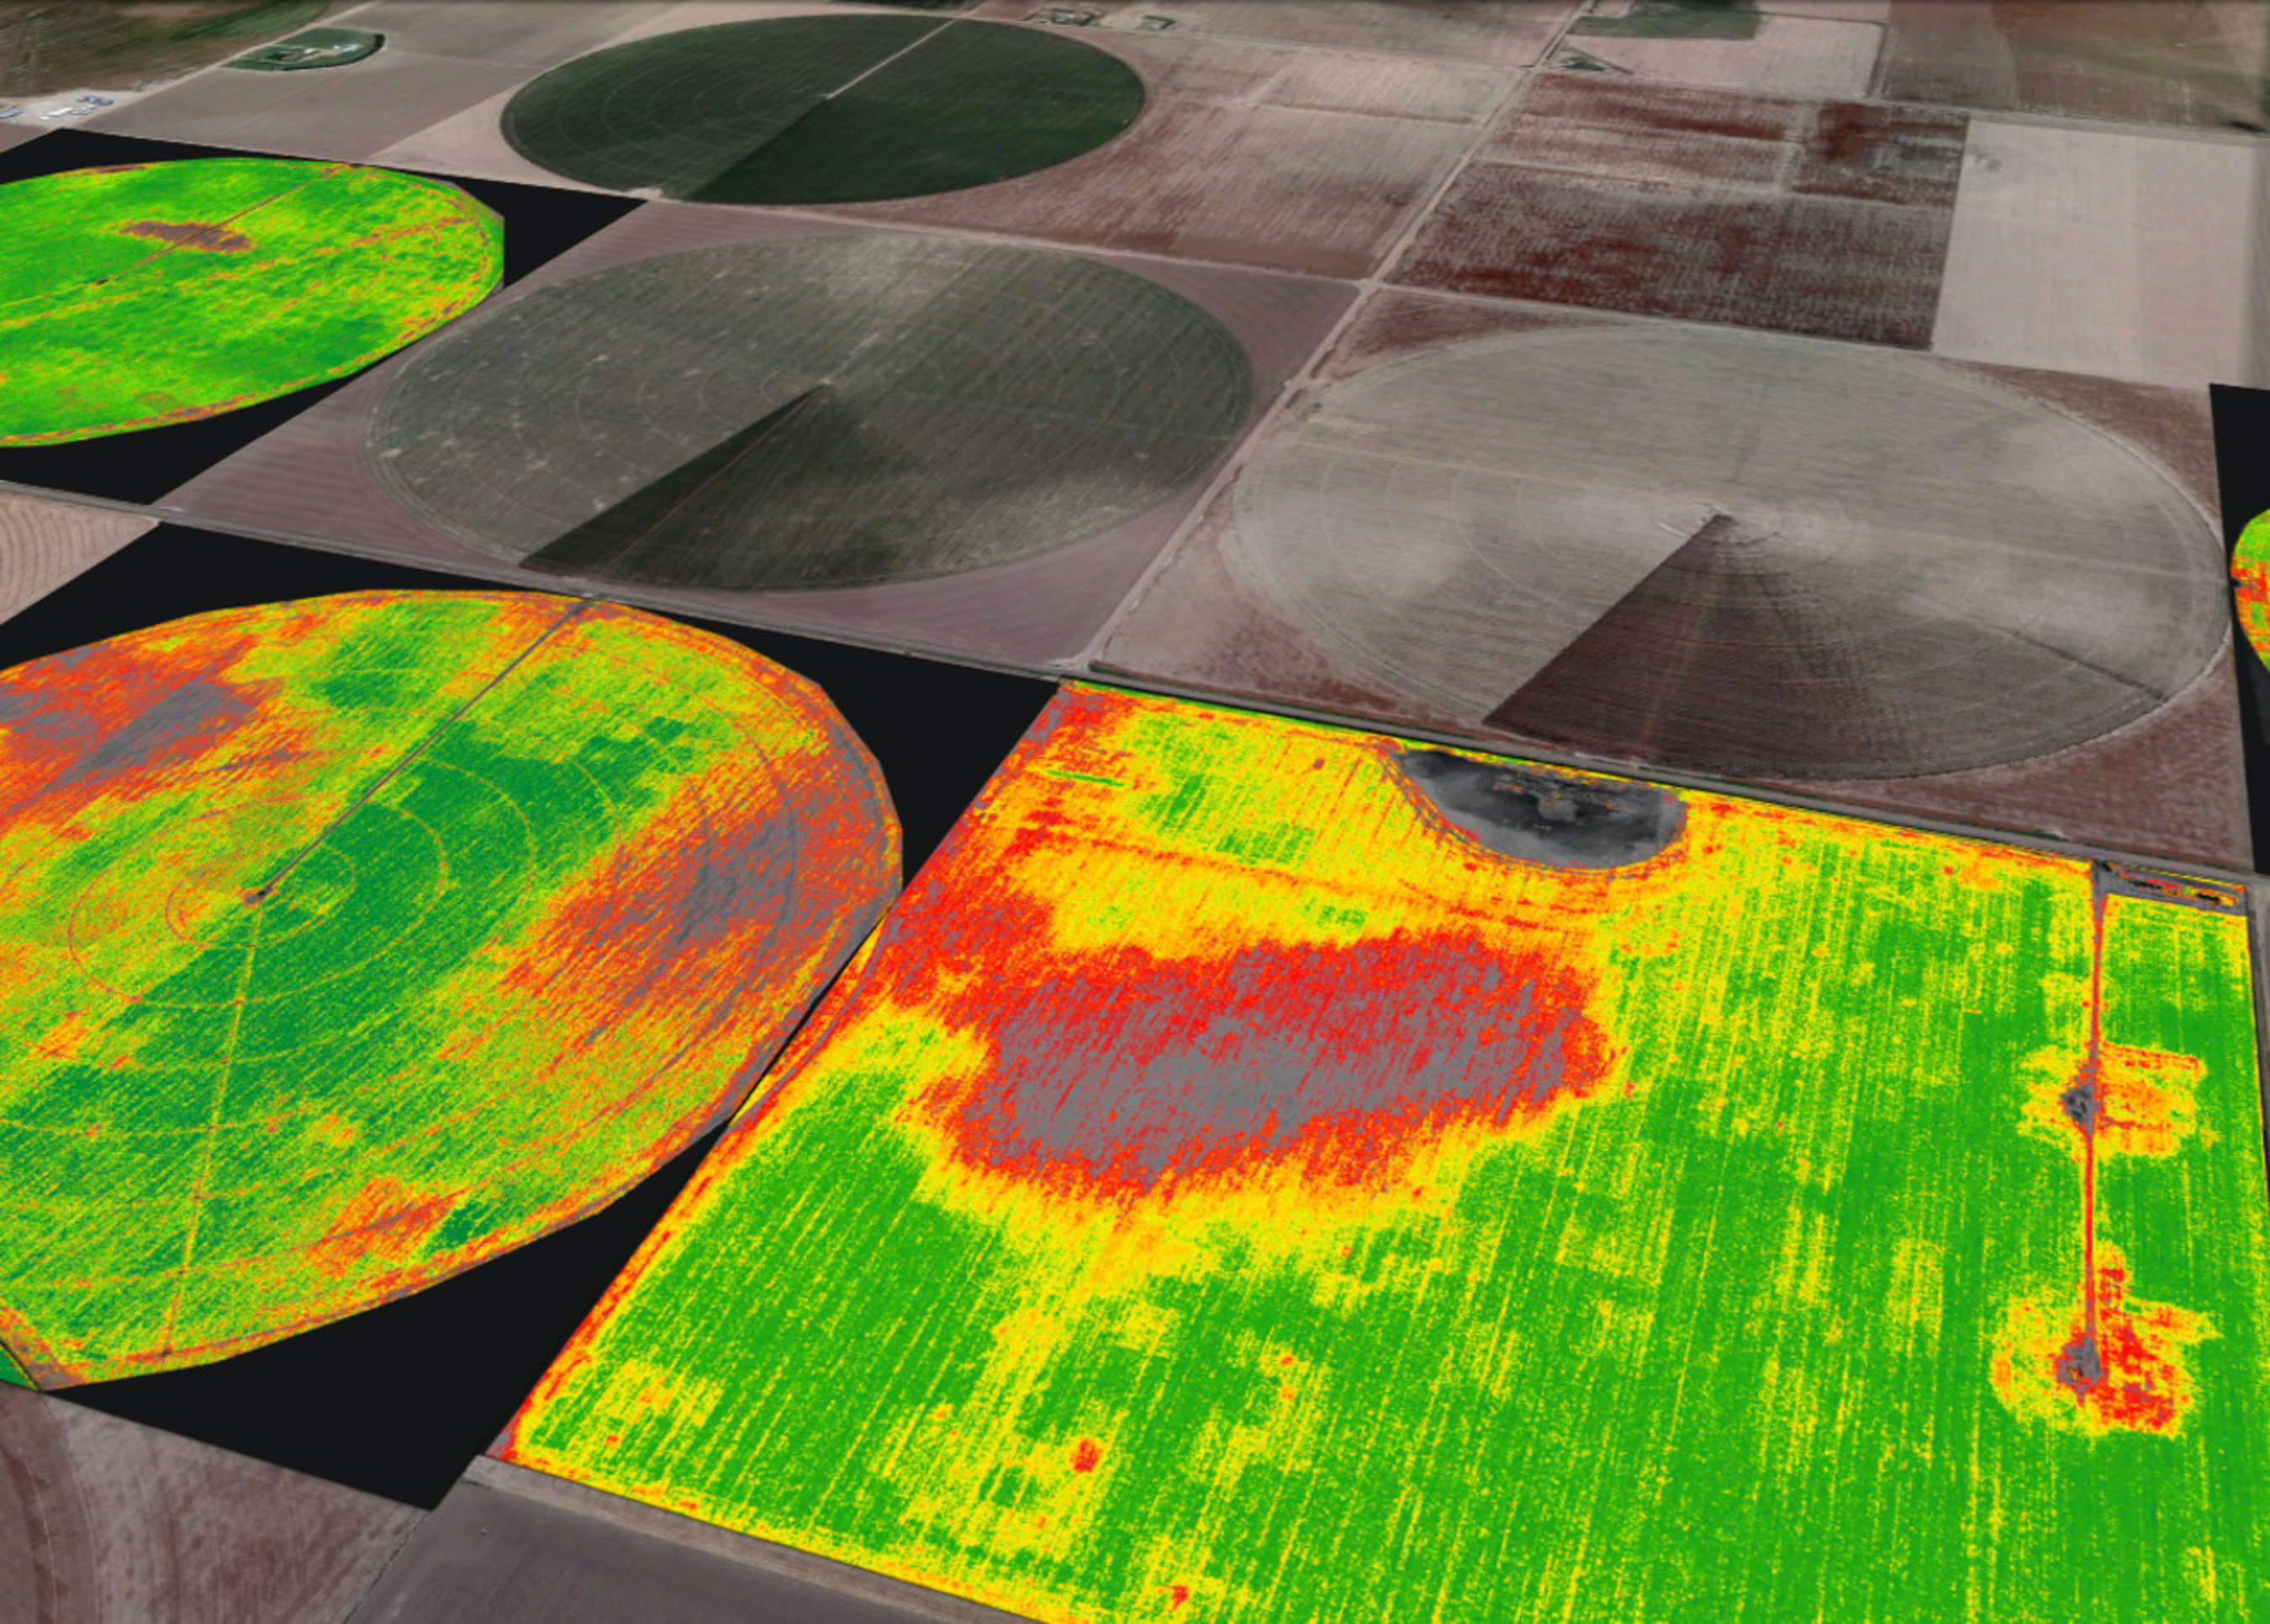 Image: Agribotix™ FarmLens™ Image Processing and Analytics Solution